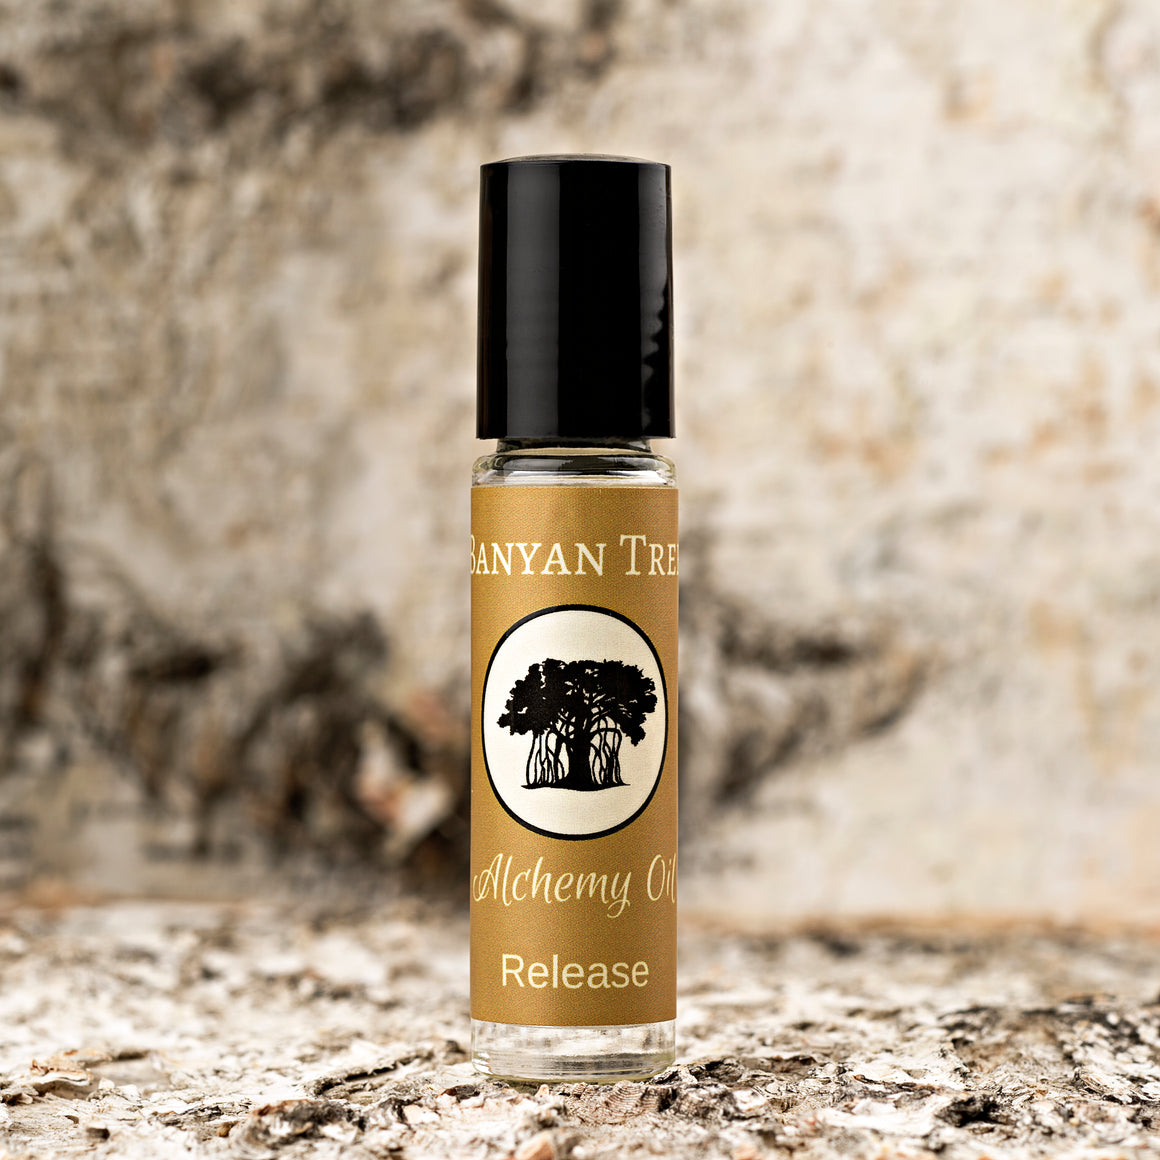 Banyan Wisdom 'Release' - Alchemy Oil - Pack of 4